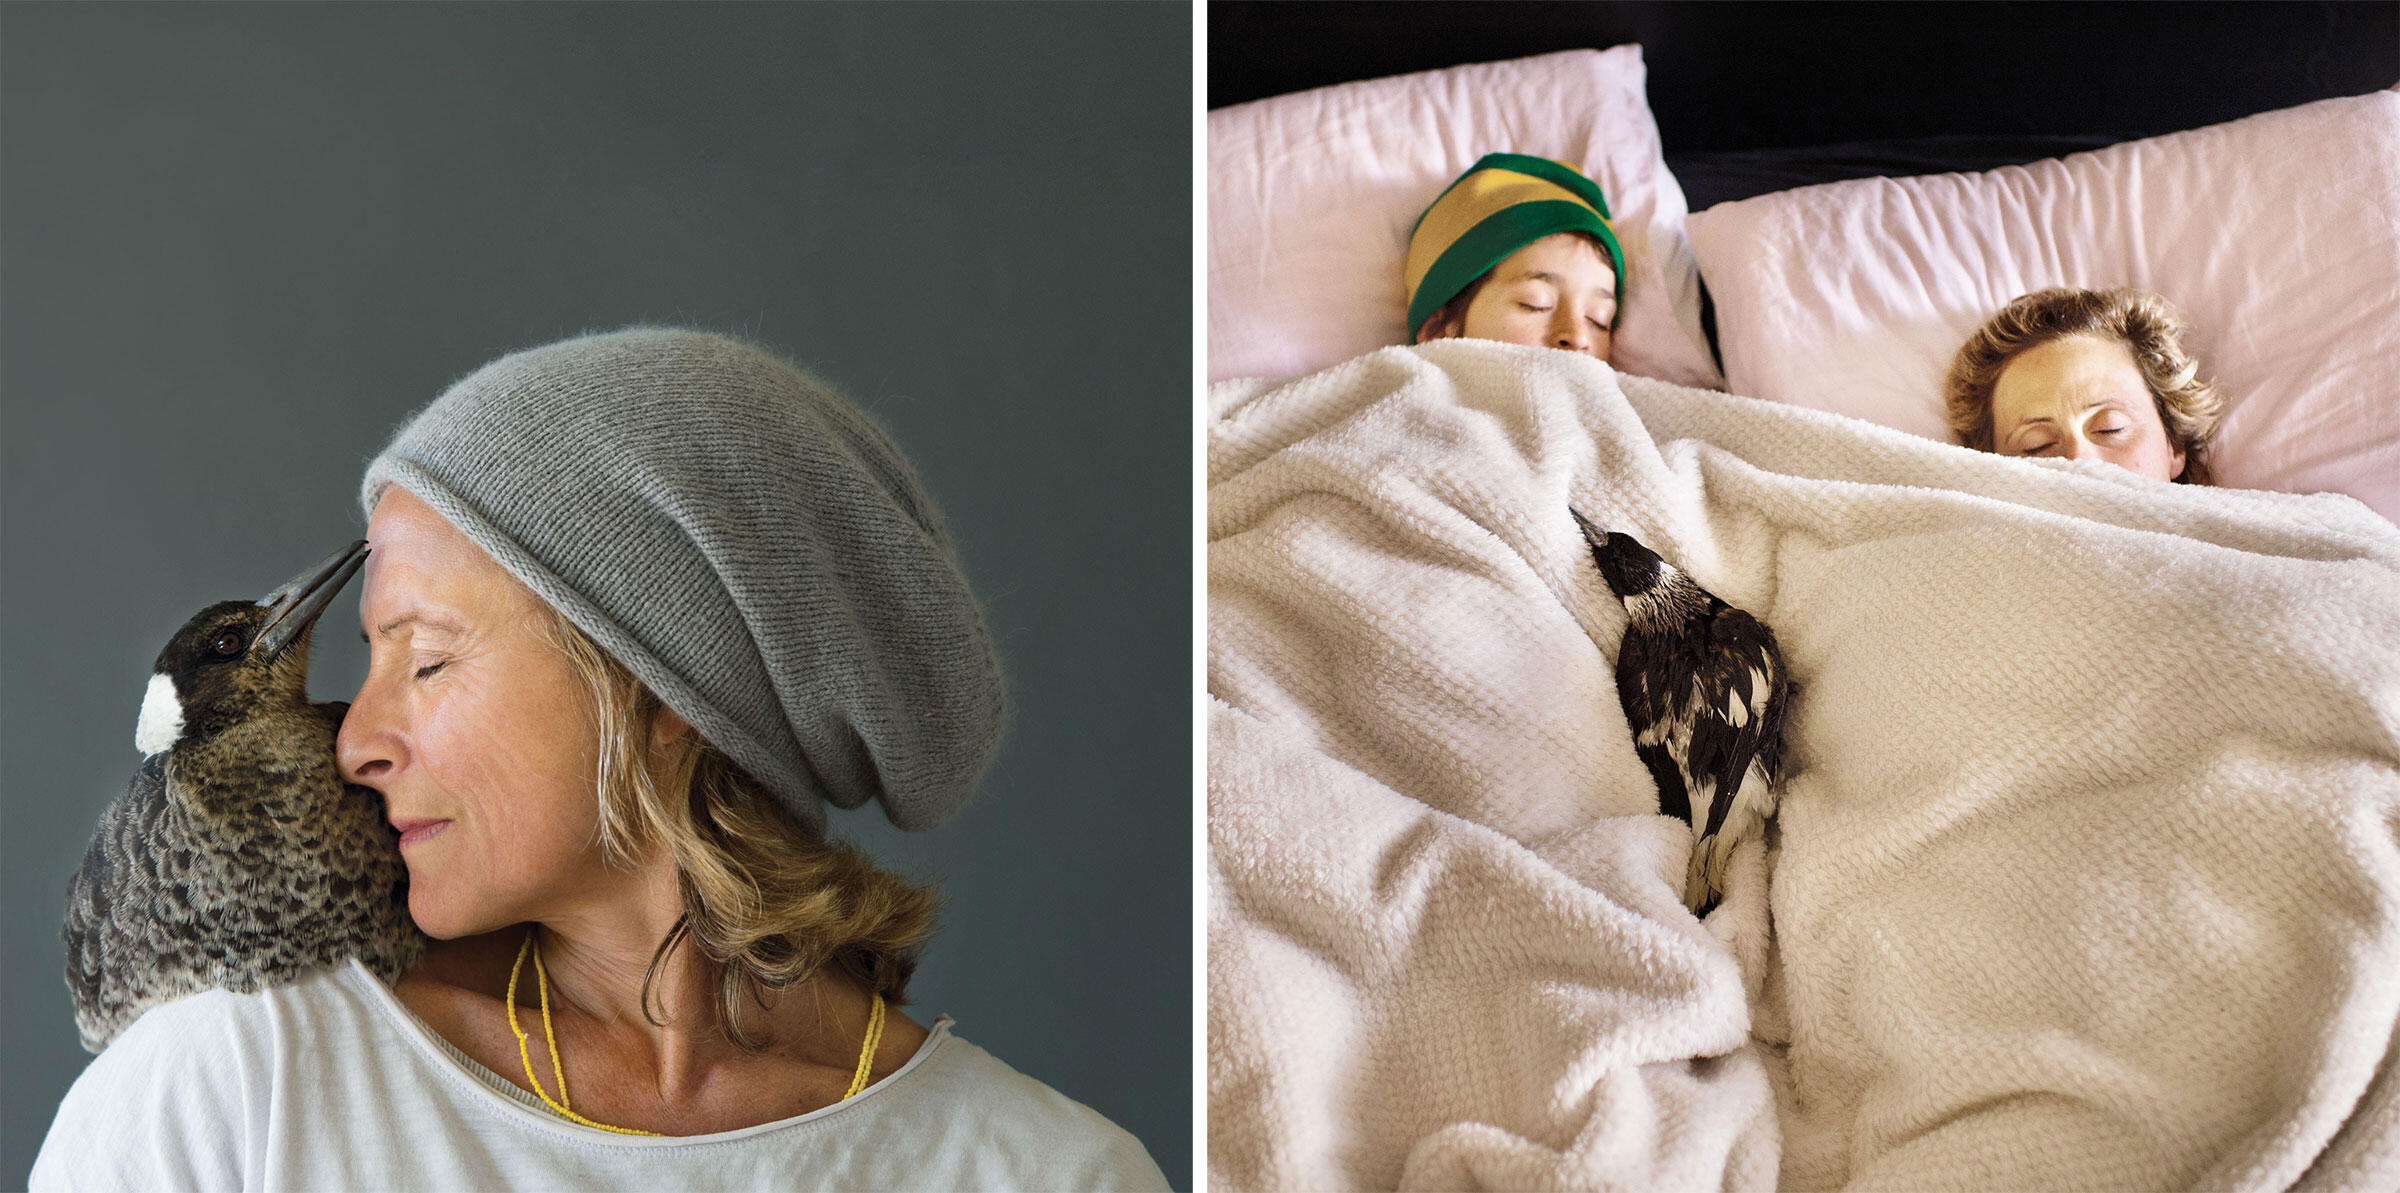 Penguin quickly became the sixth member of our family, and she developed an especially close relationship with Sam (far left). In the early morning she'd often zip into a bedroom, plop onto the covers, and get some extra sleep. Photos: Cameron Bloom